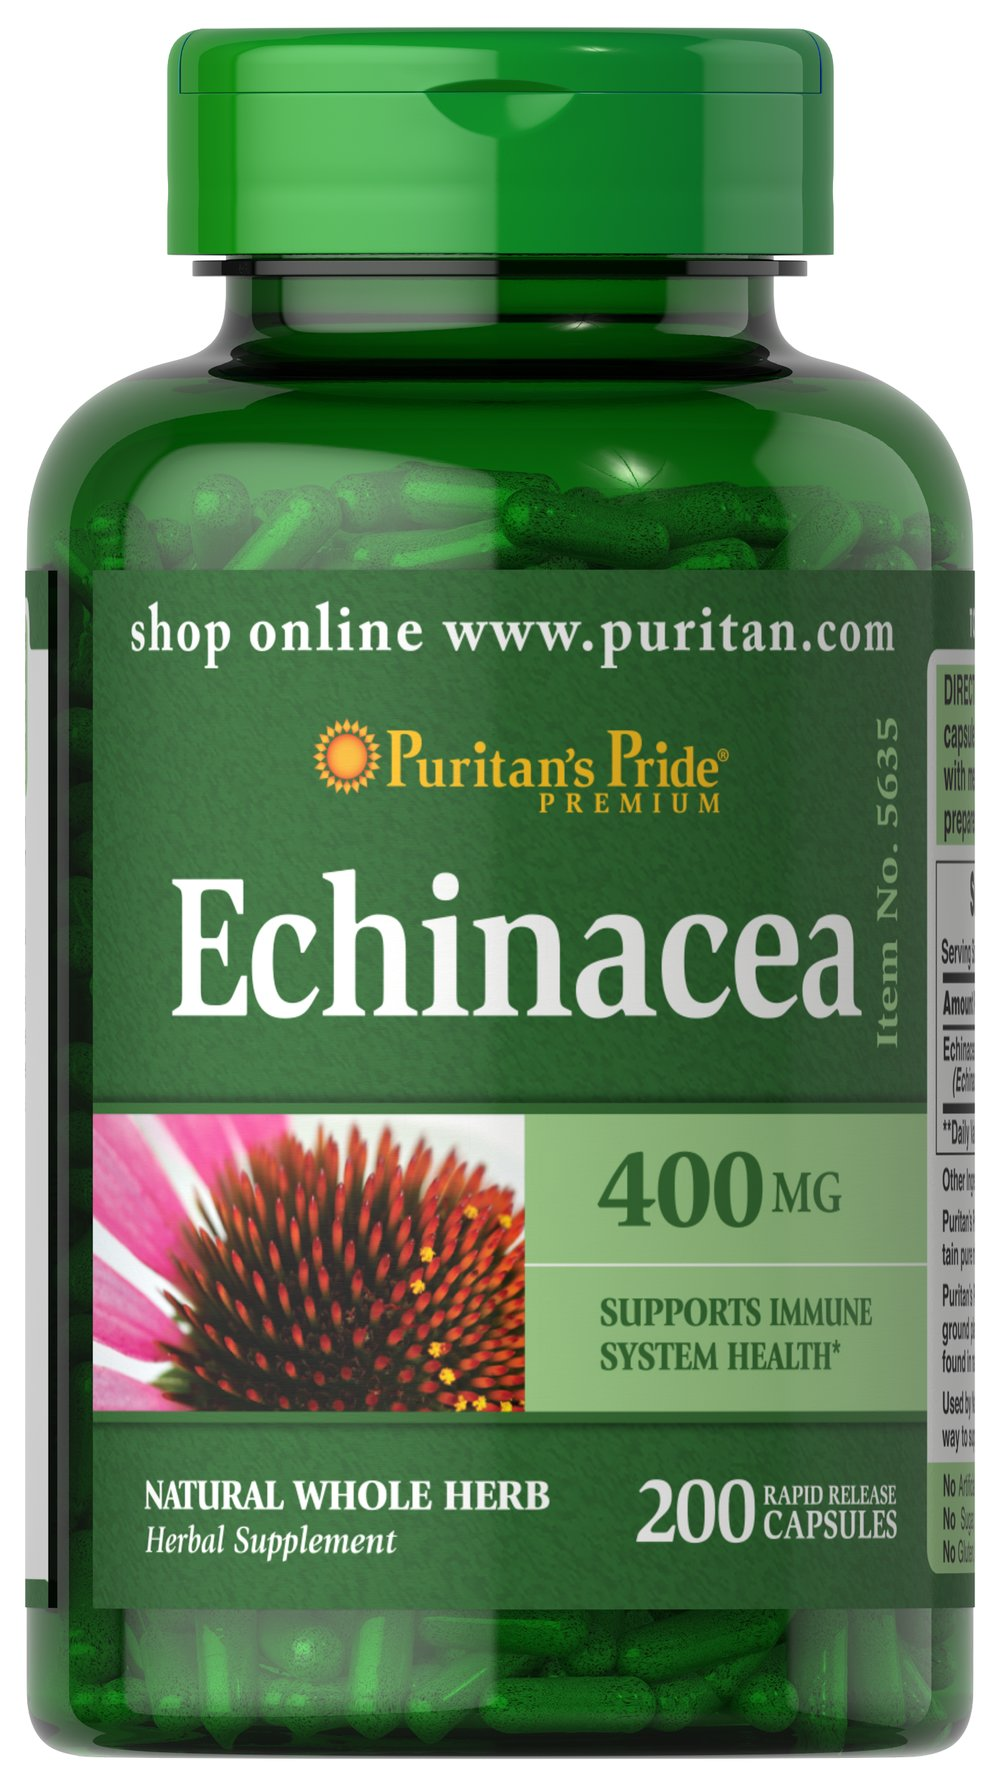 Echinacea 400 mg Used by Native Americans, Echinacea is a centuries-old way to support immune system health.** As an herbal supplement, Echinacea is especially popular during times of seasonal change.</p><p>This product comes in capsule form, but Echinacea is also available as a liquid extract, in combination with Goldenseal, as tablets in combination with Vitamin C and Rose Hips, or in a liquid formula specially designed for juniors.</p> 200 Capsules 400 mg $9.49